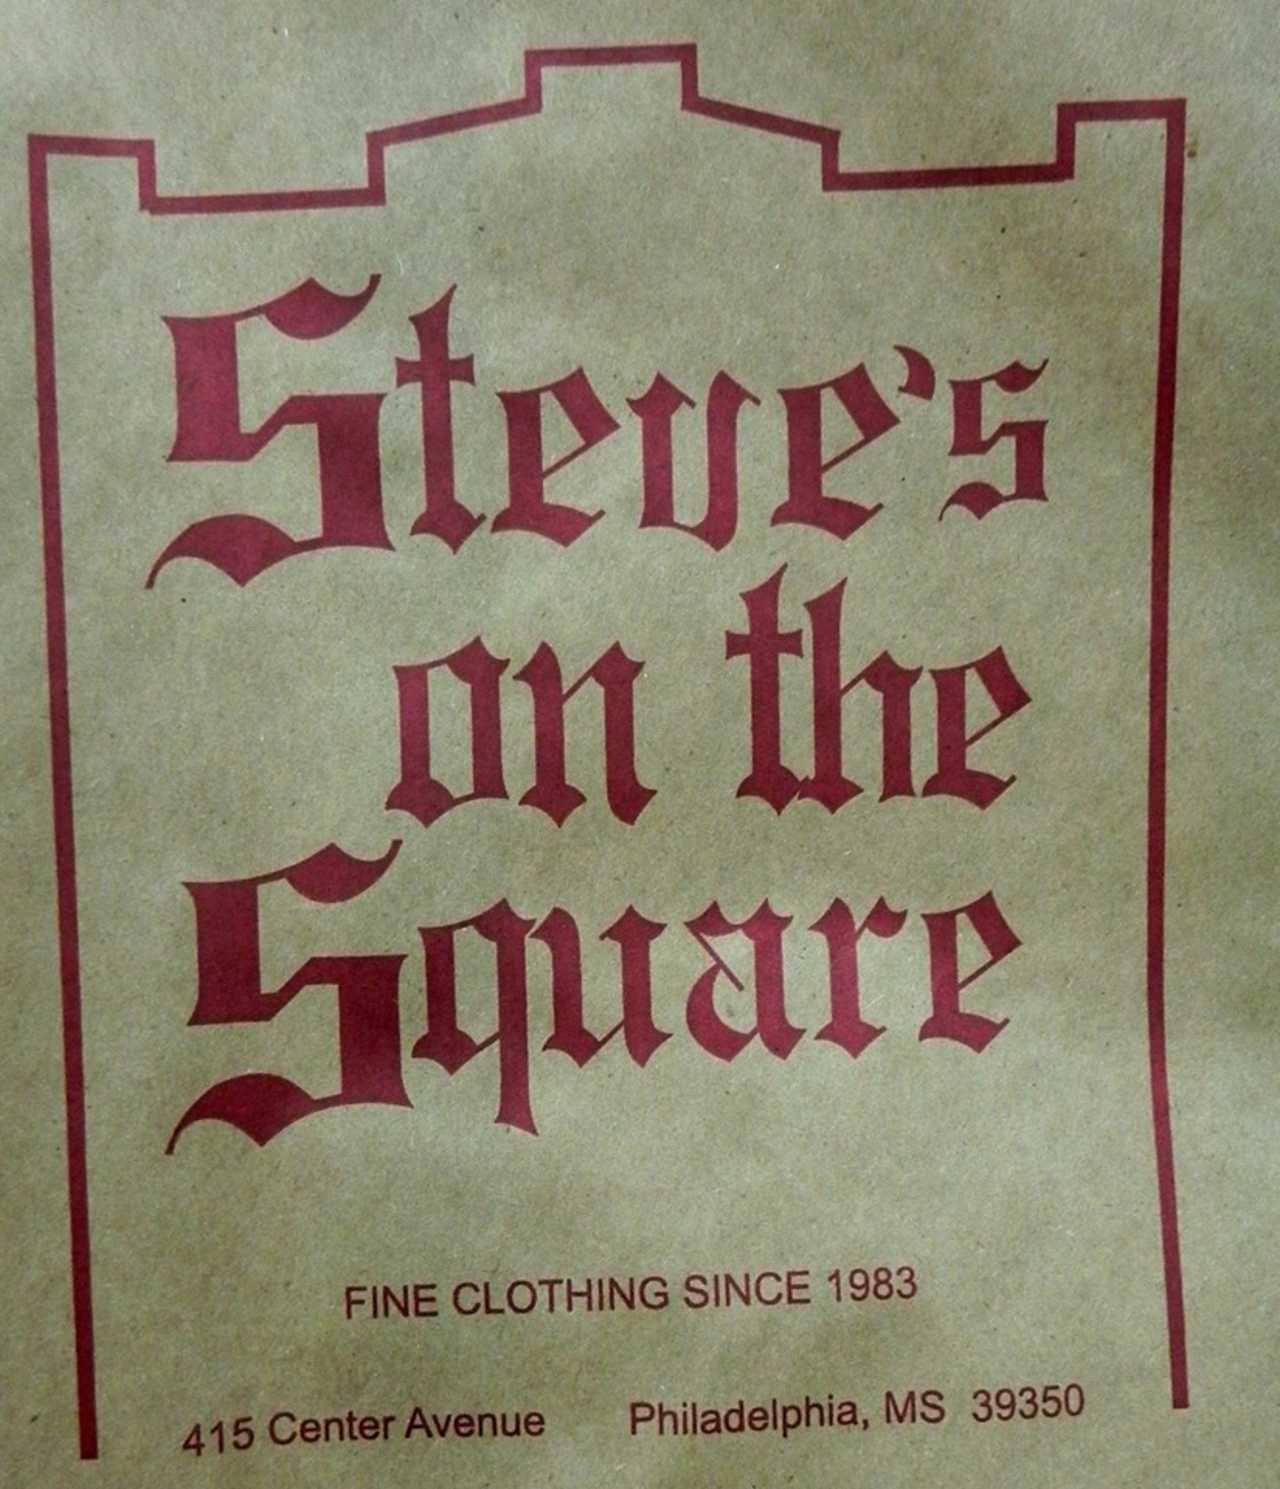 Steve's on the Square - Shopping - Retail Clothing in Philadelphia MS